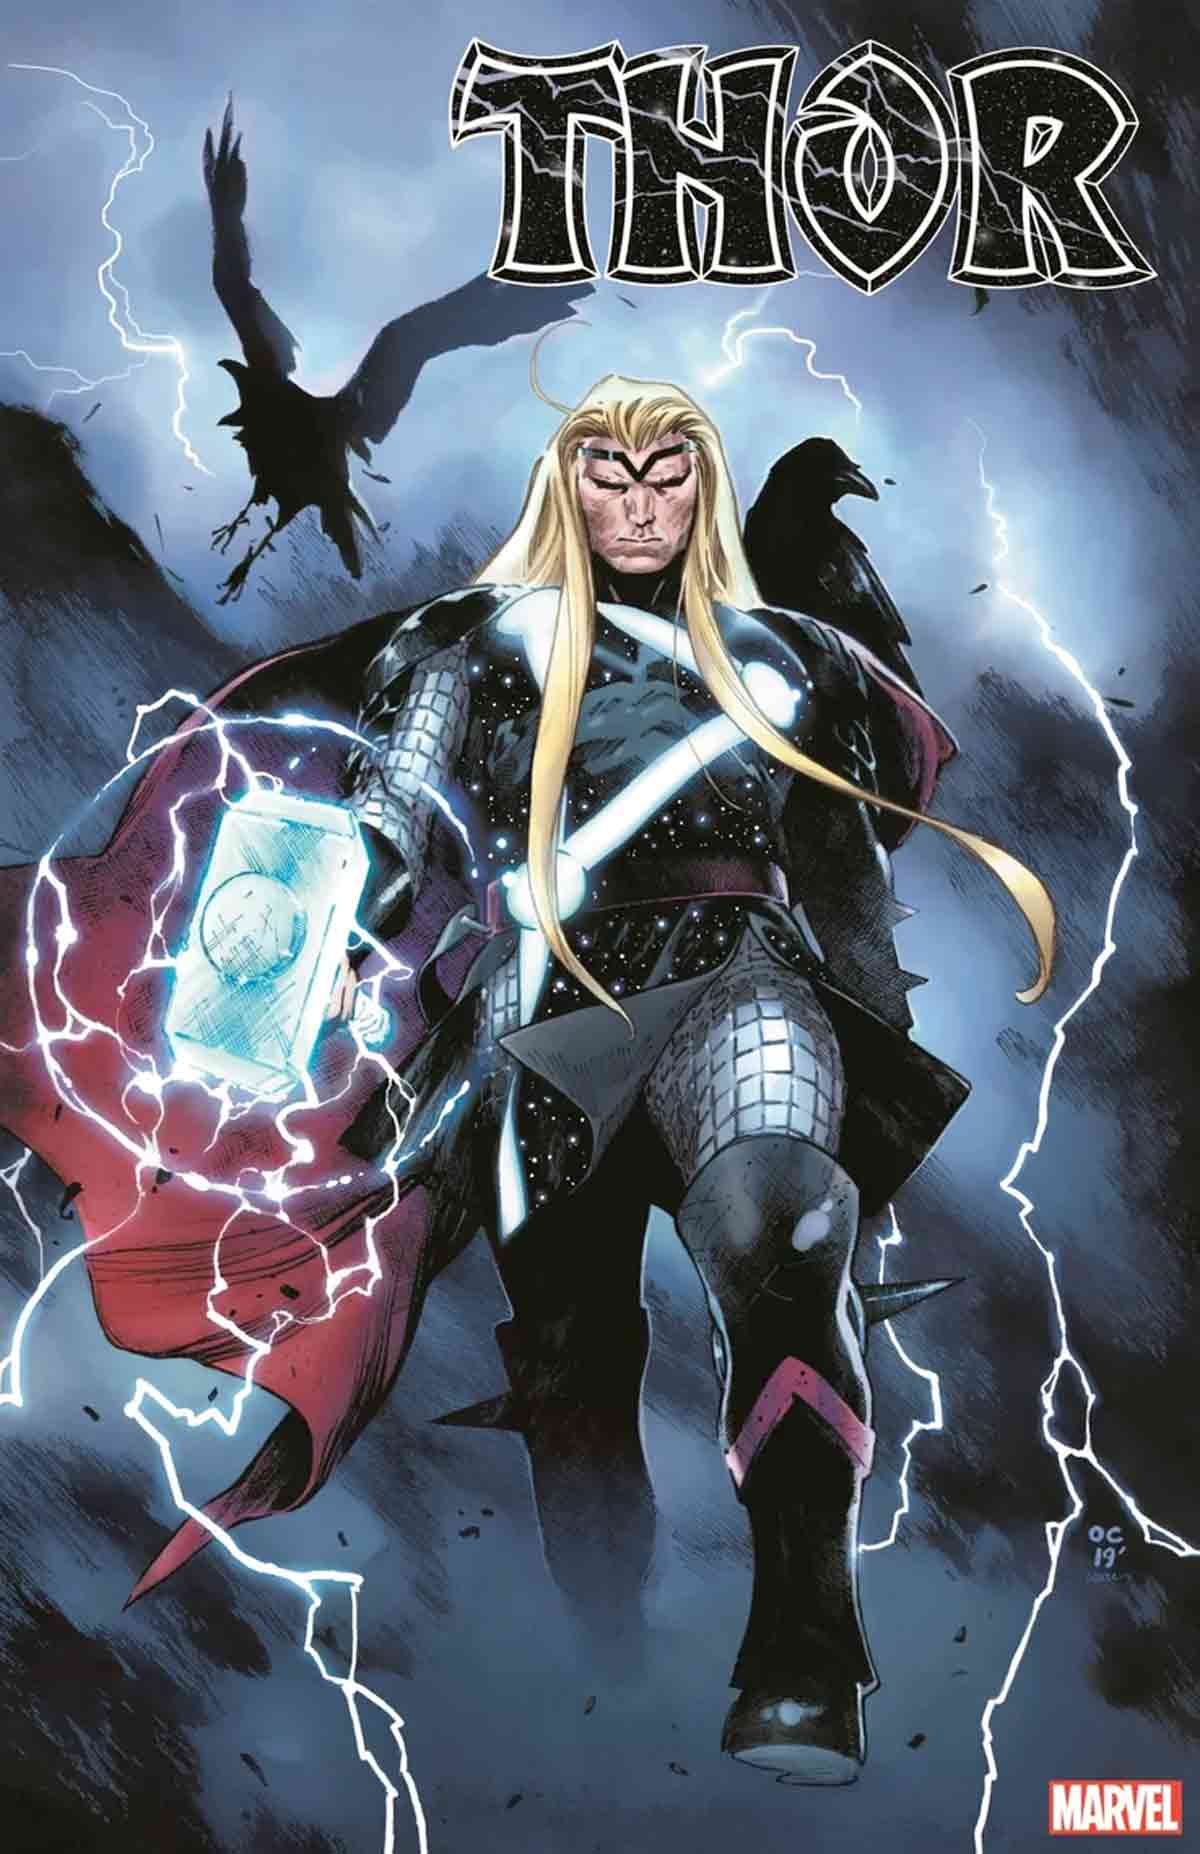 Espectacular look del Thor Oscuro de Marvel